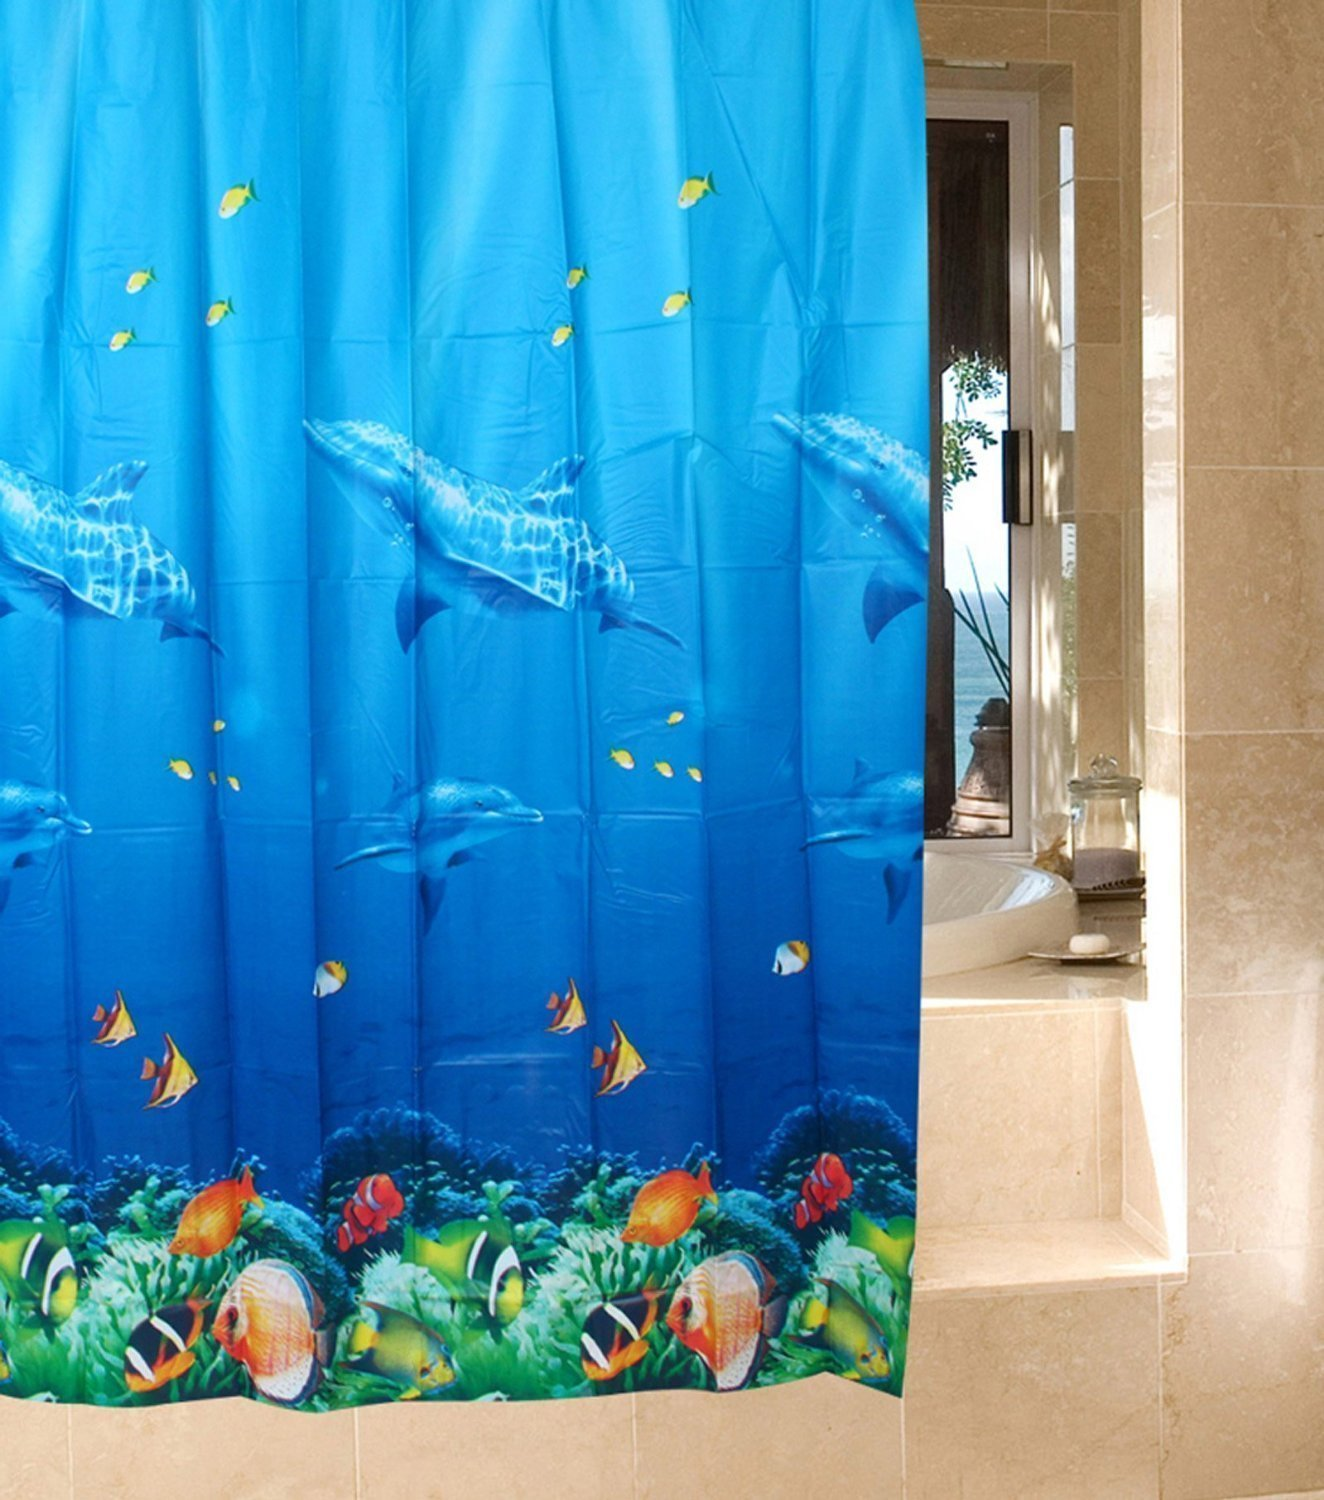 Dolphin Tropical Fish Coral Ocean Theme Bath Shower Curtain With 12 Hooks Multicolor Amazoncouk Kitchen Home